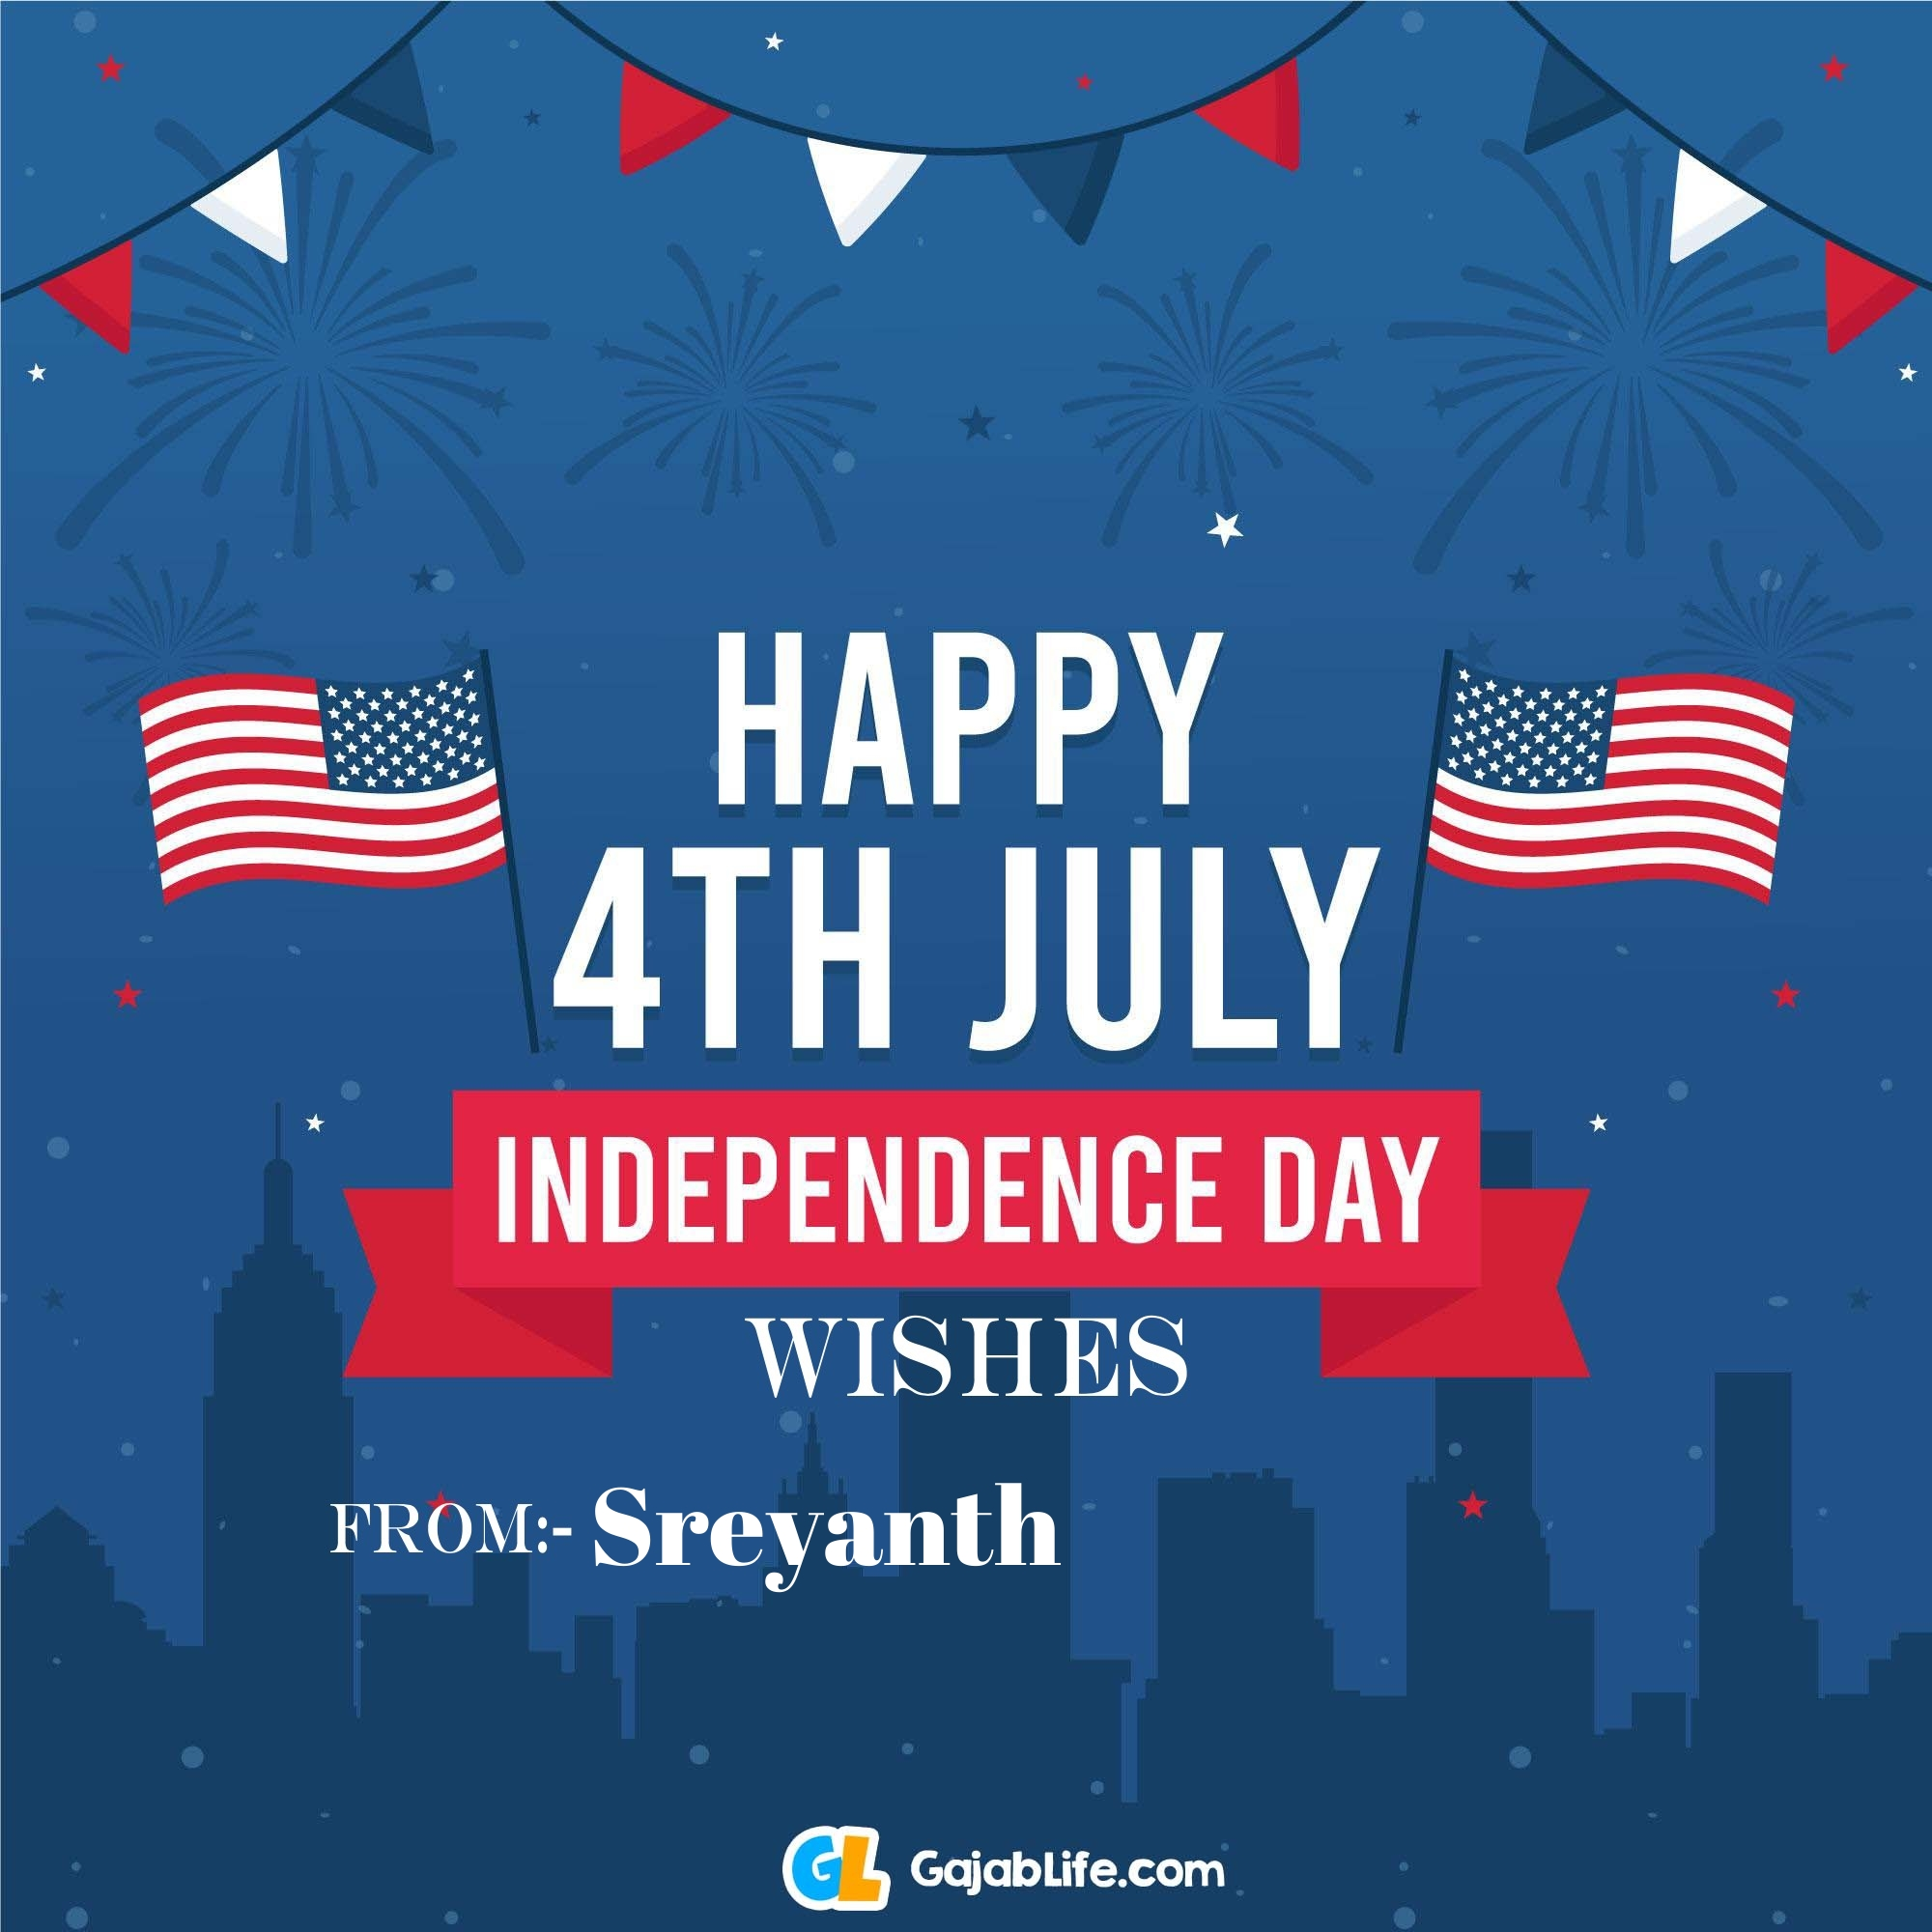 Sreyanth happy independence day united states of america images